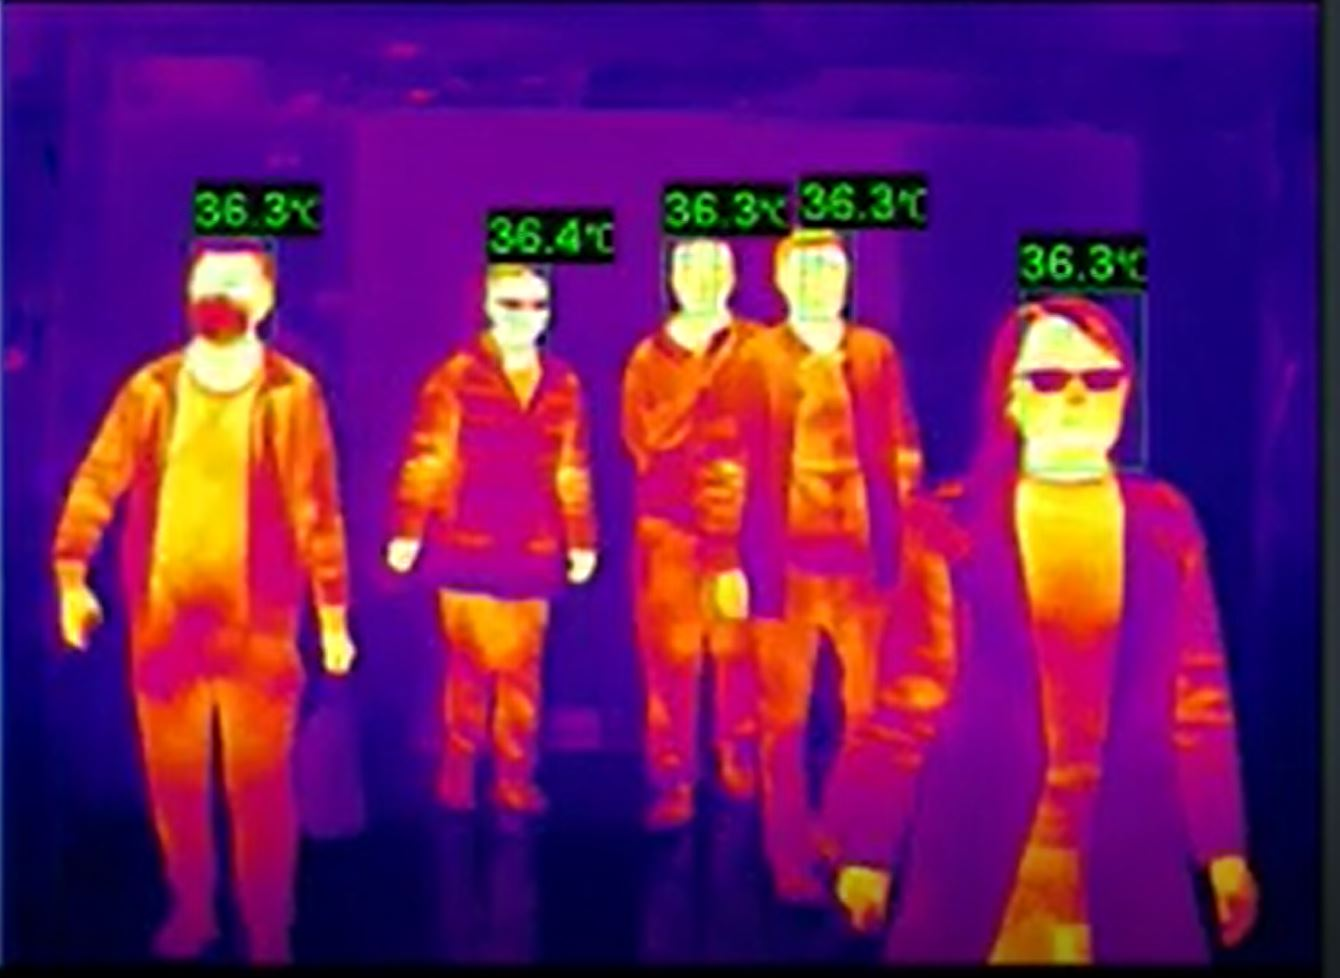 Only thermal picture